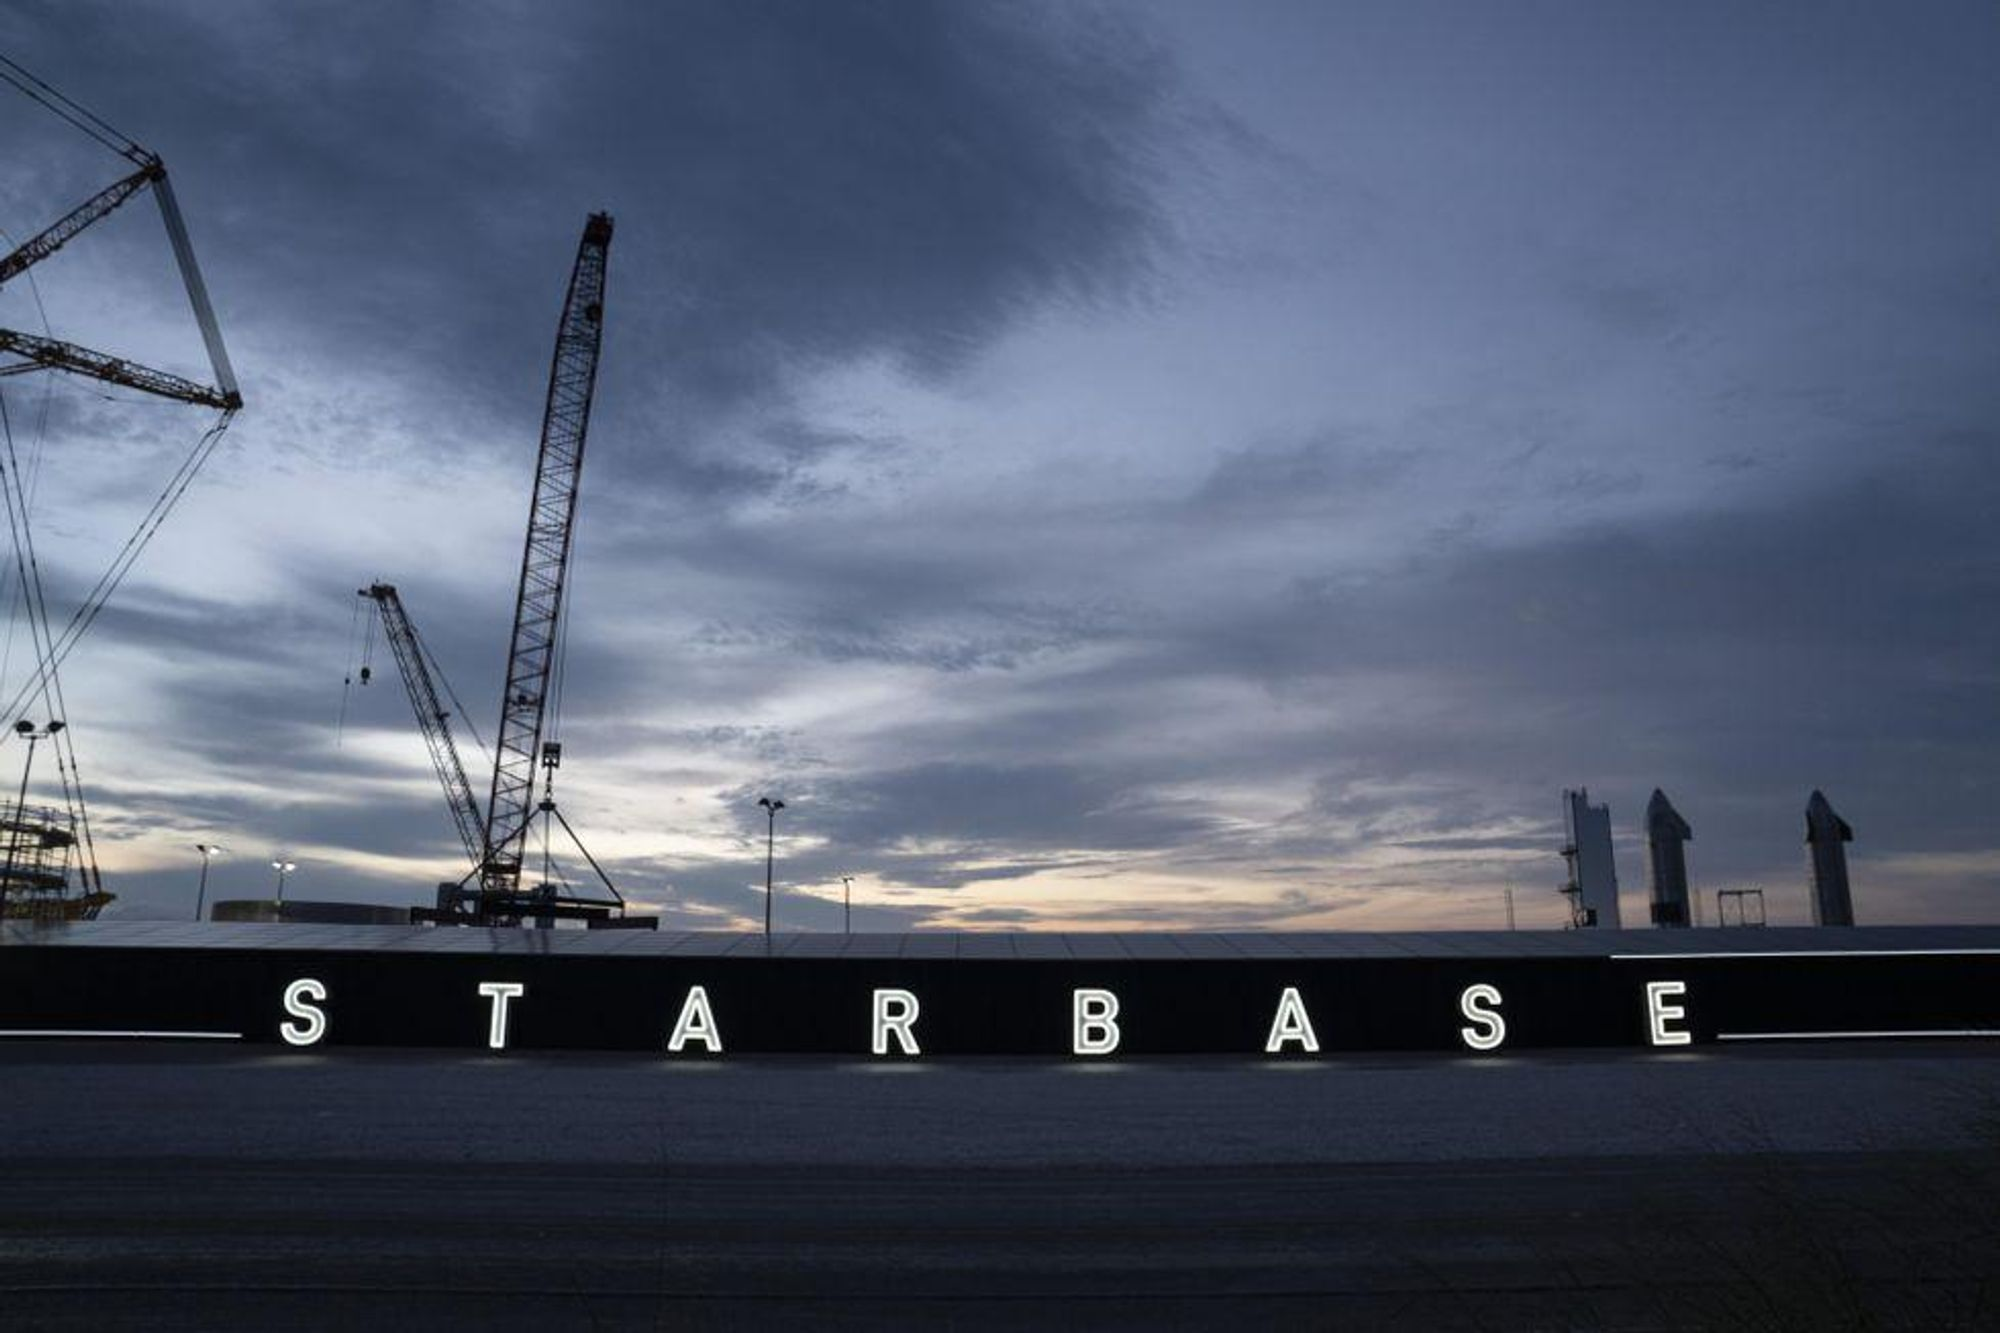 SpaceX's Starbase will likely be allowed to launch the Starship rocket